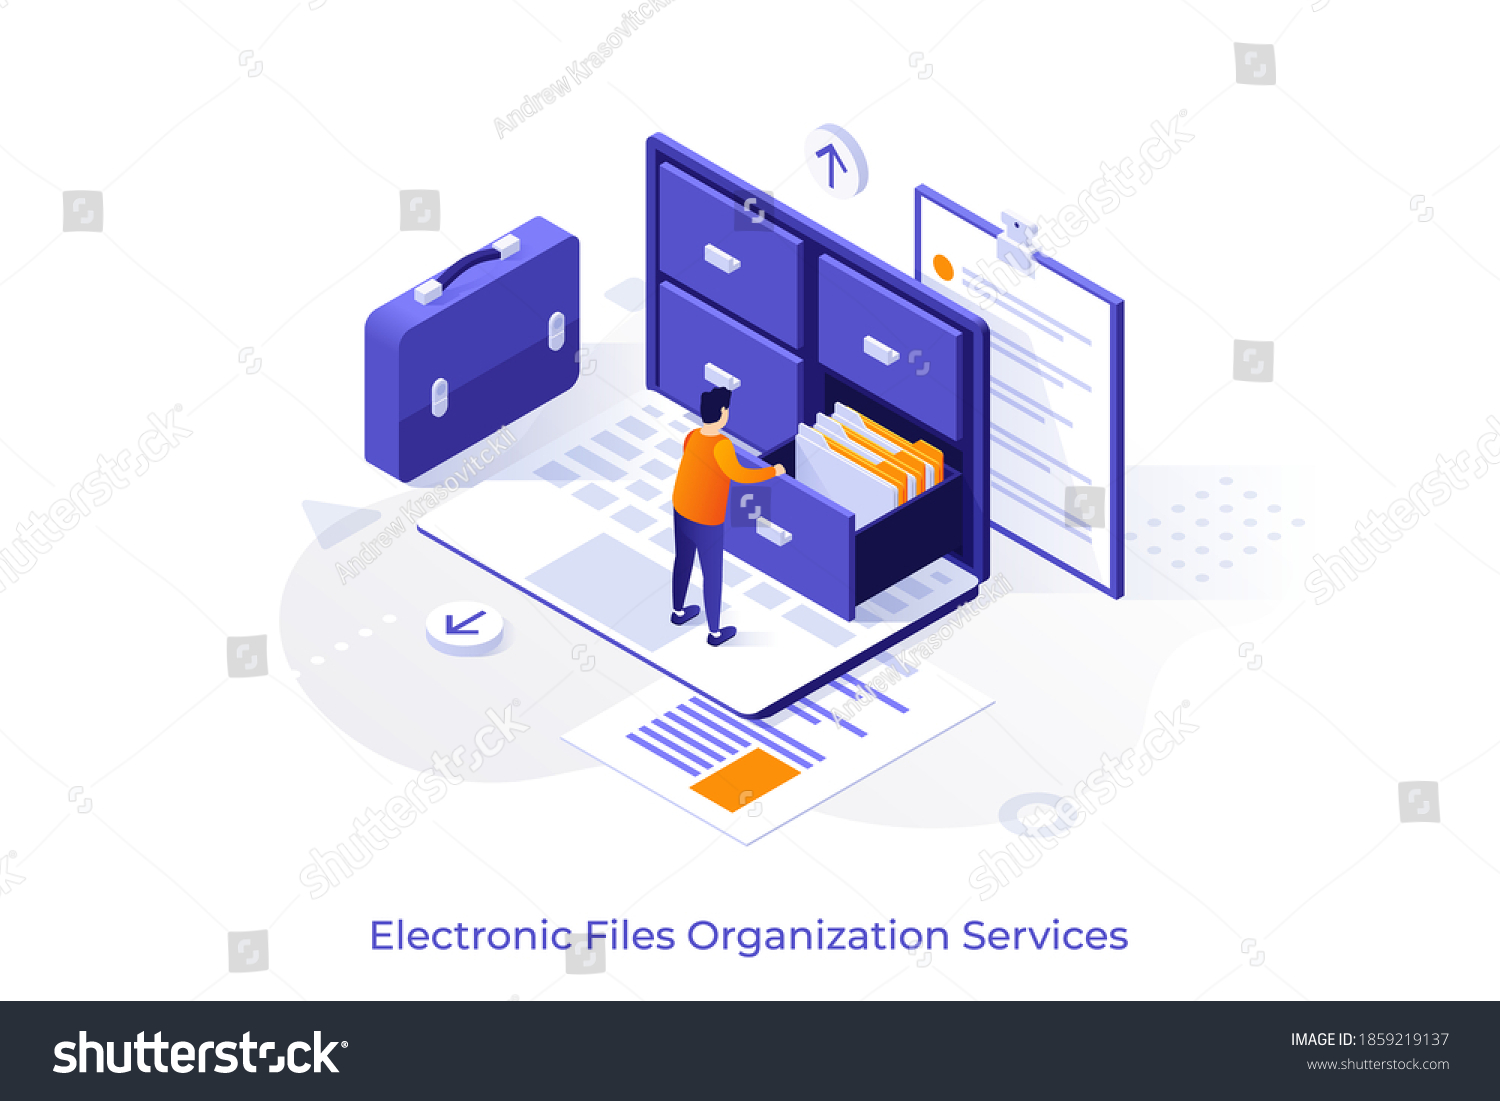 Conceptual template with man standing on laptop computer and opening drawer of storage cabinet full of documents. Scene for electronic file organization service. Isometric vector illustration. #1859219137